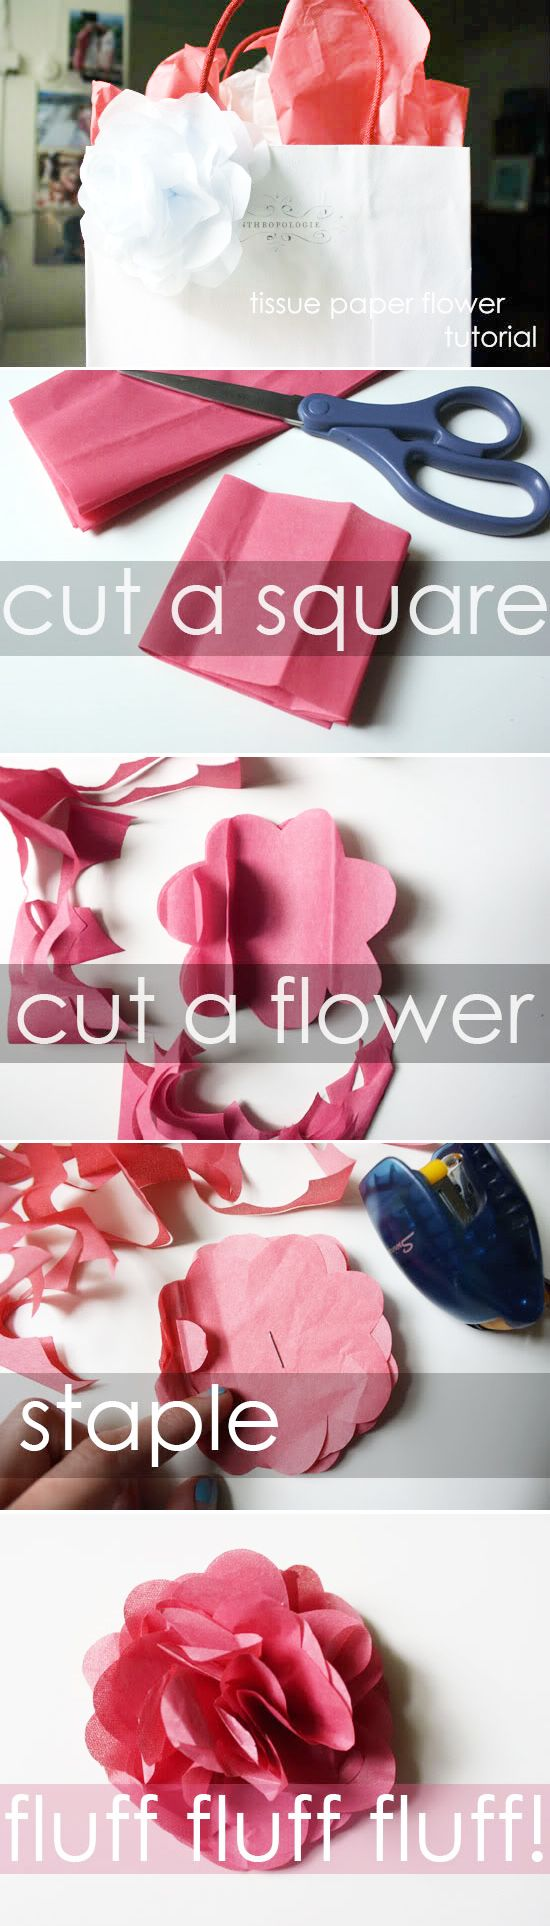 tissue paper flower - great idea for wrapping presents!